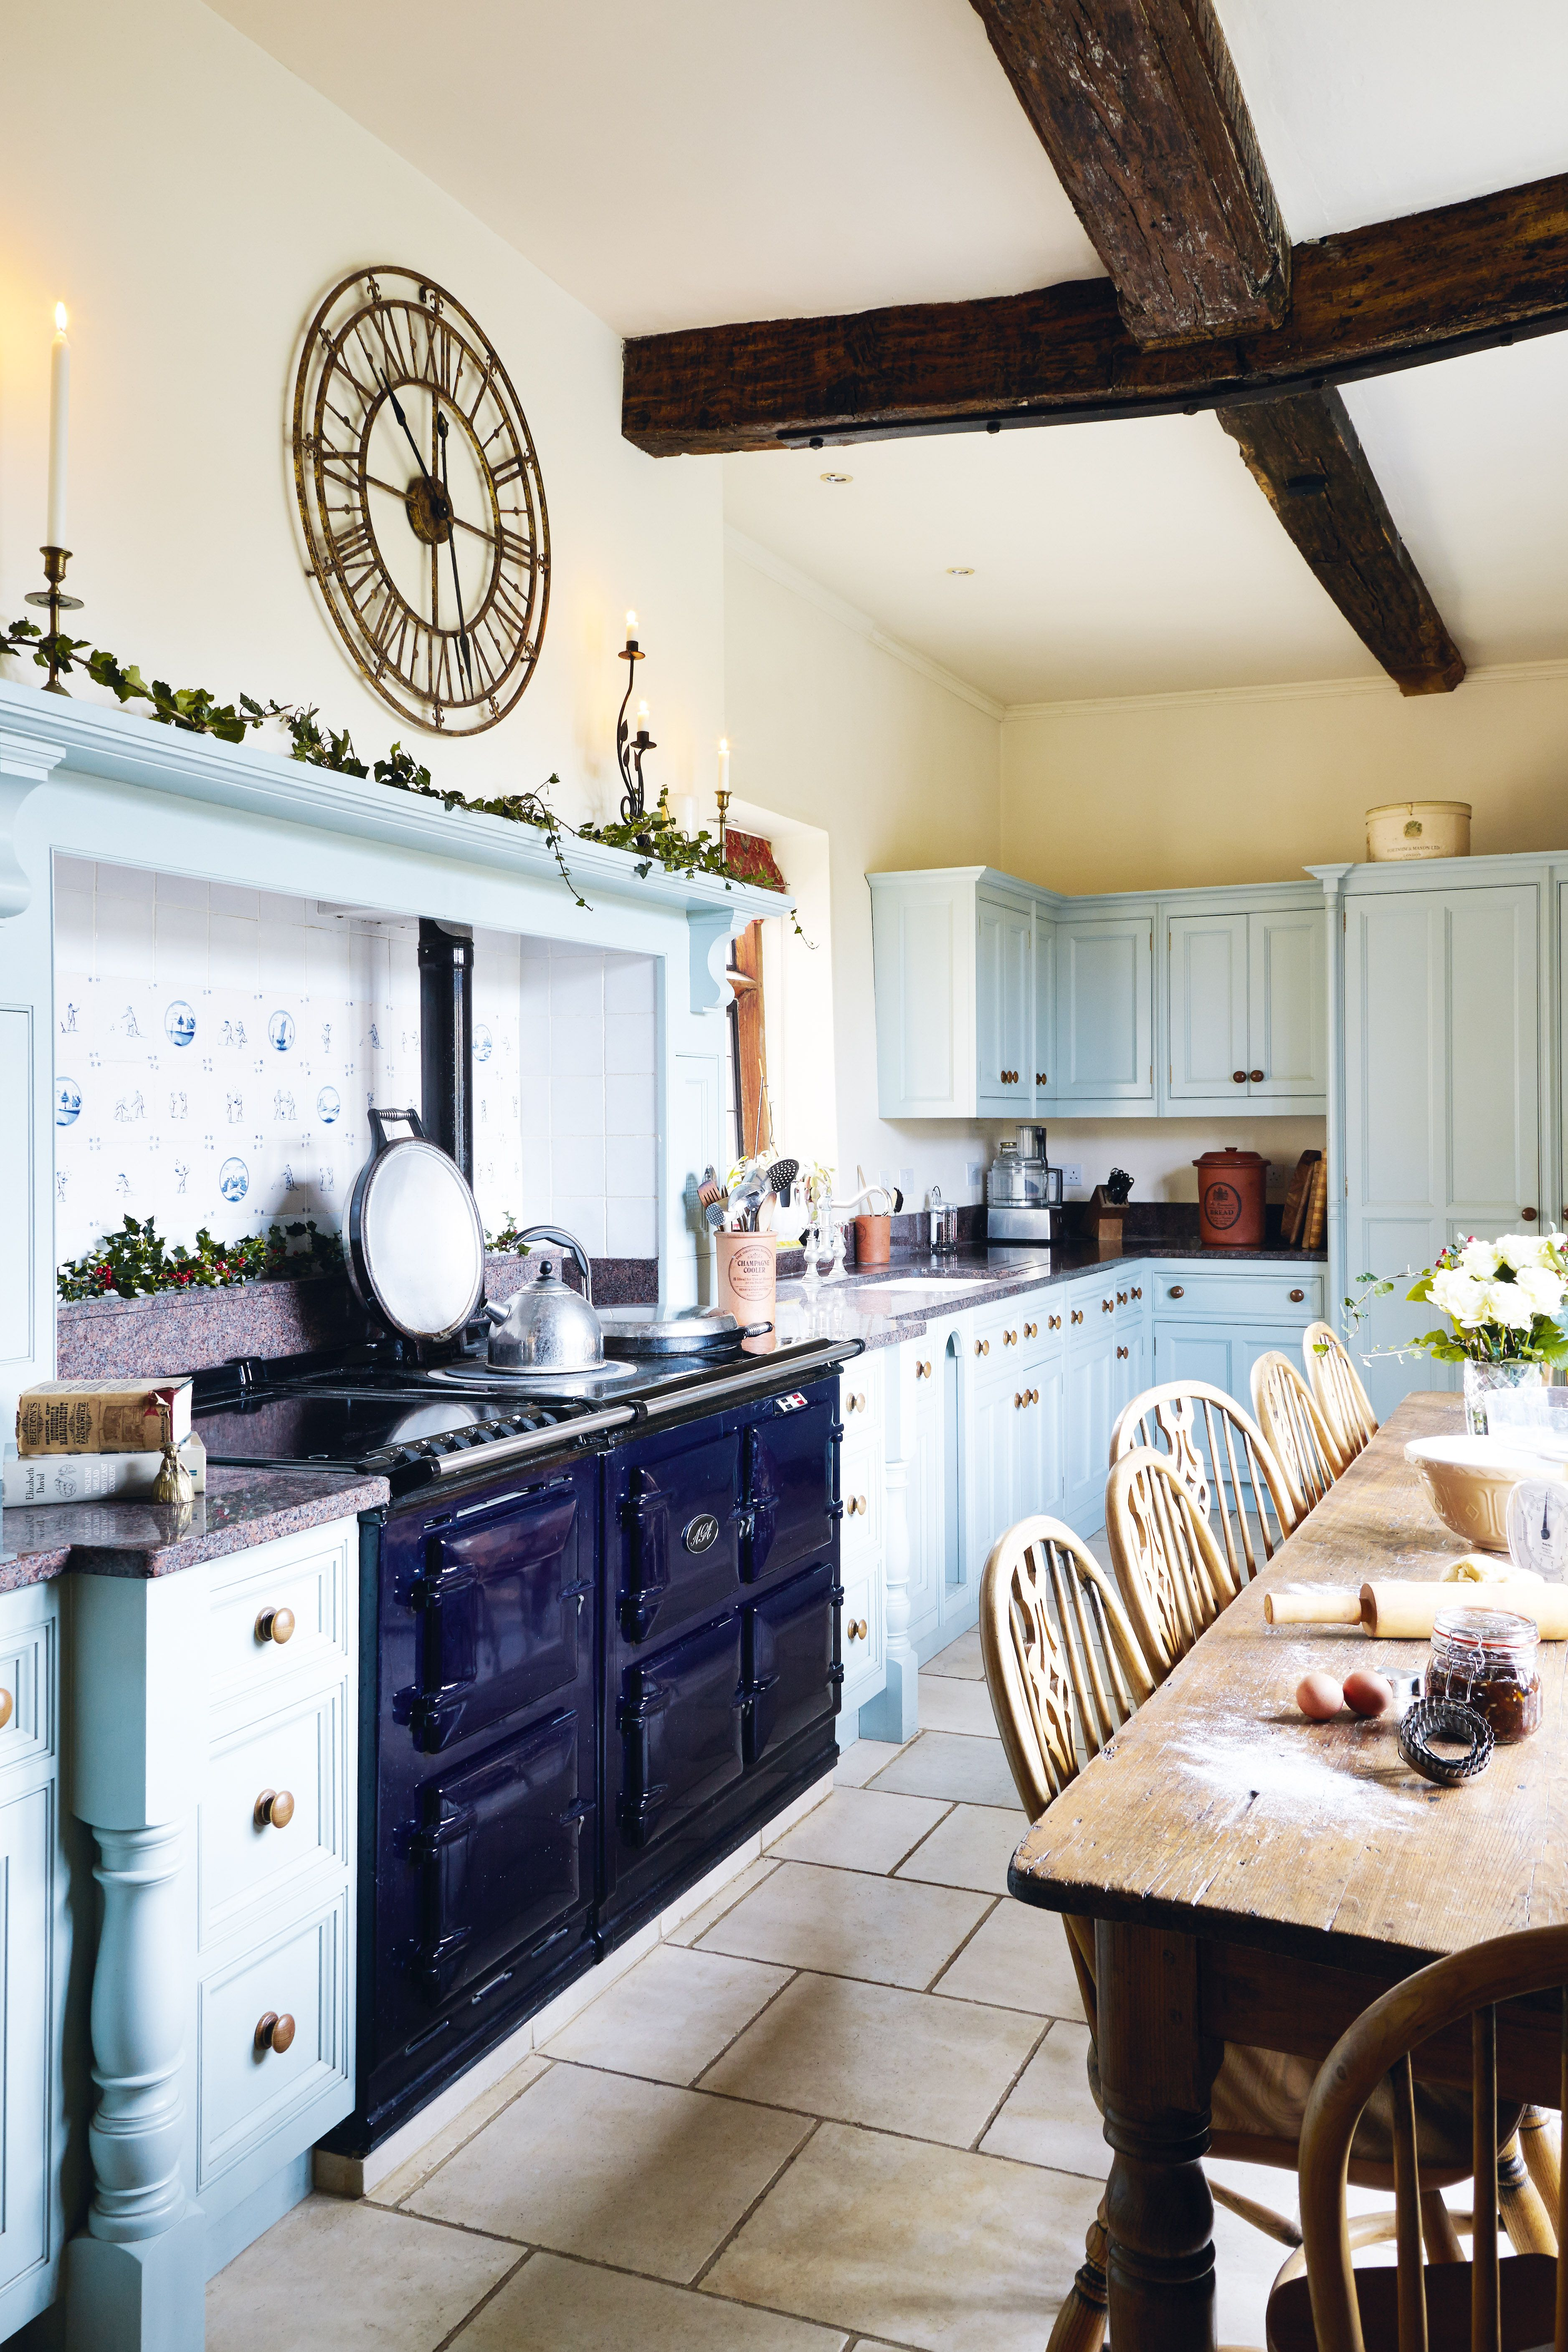 20 country kitchens to get you inspired!